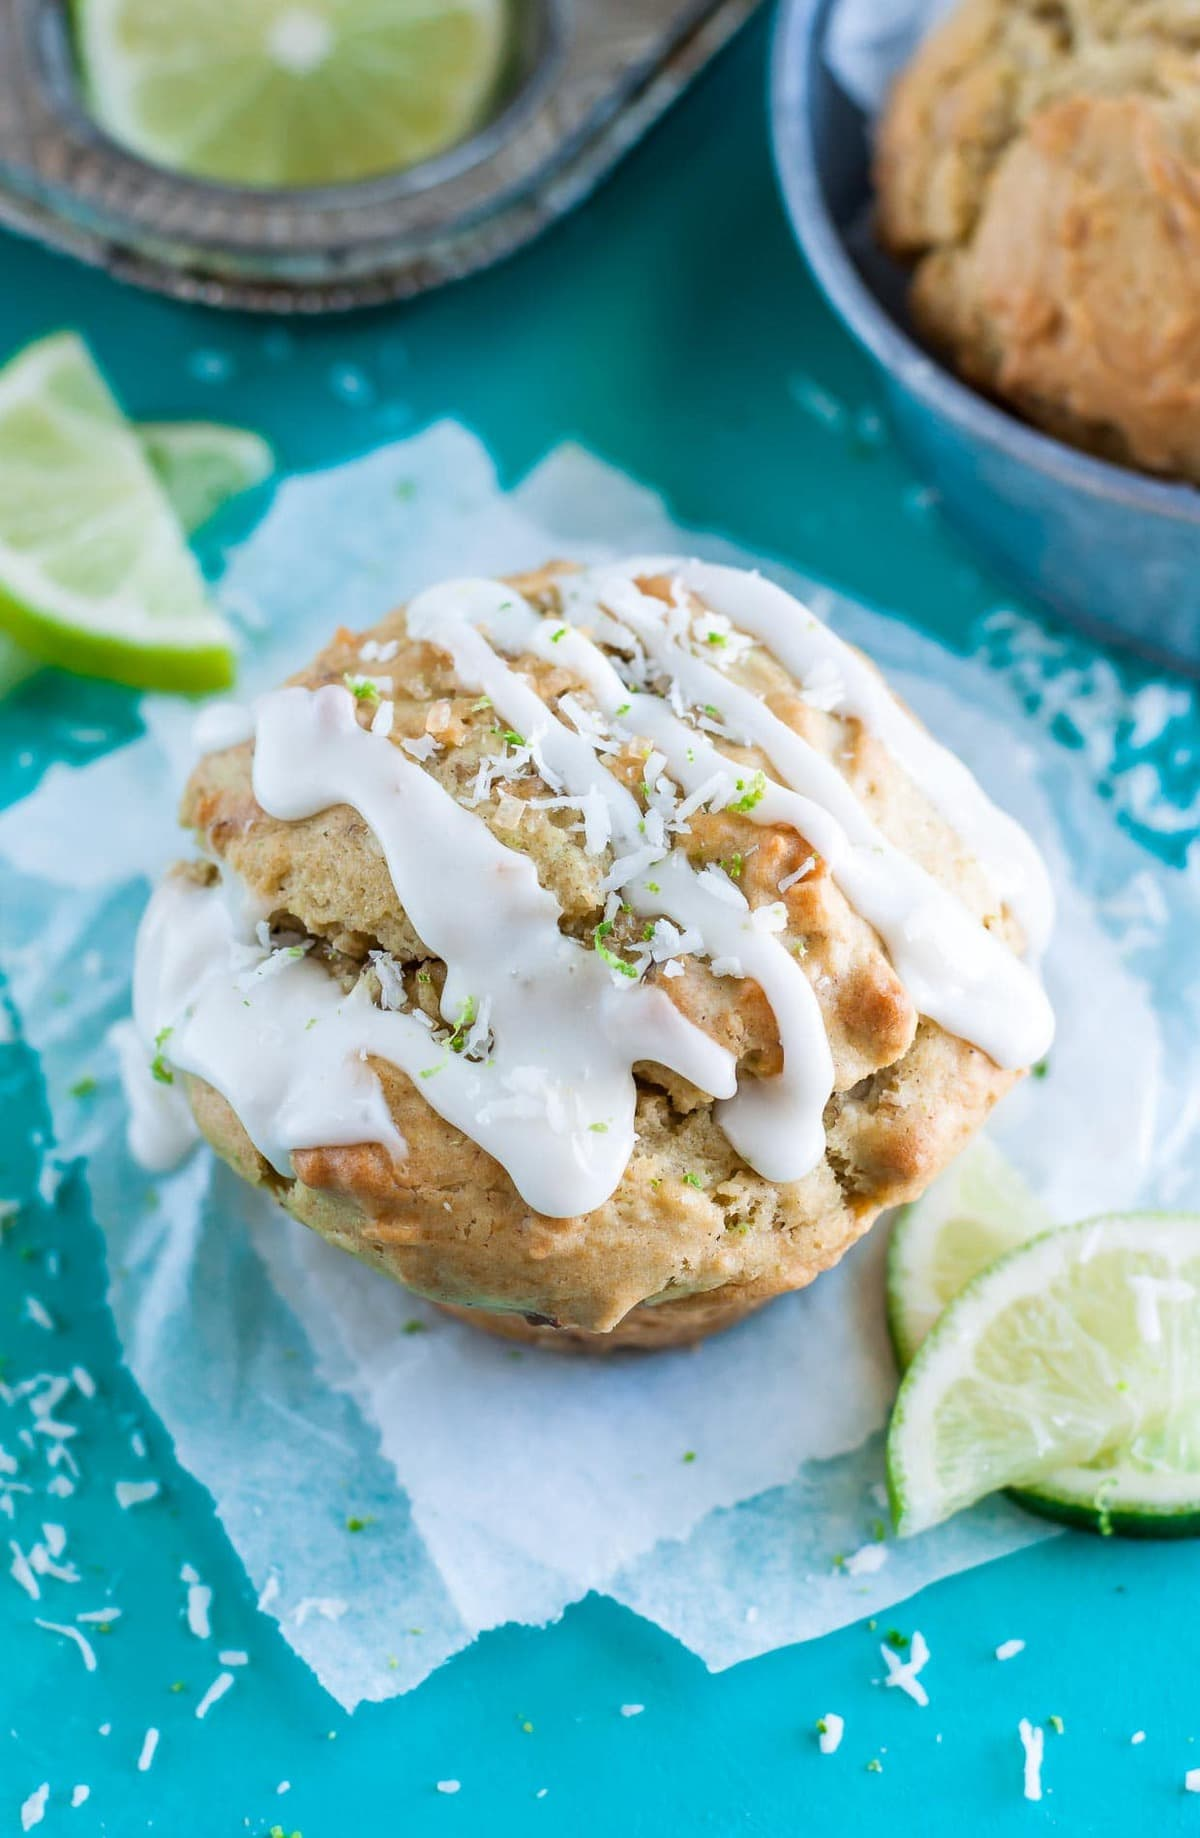 Coconut lime avocado muffin with icing.